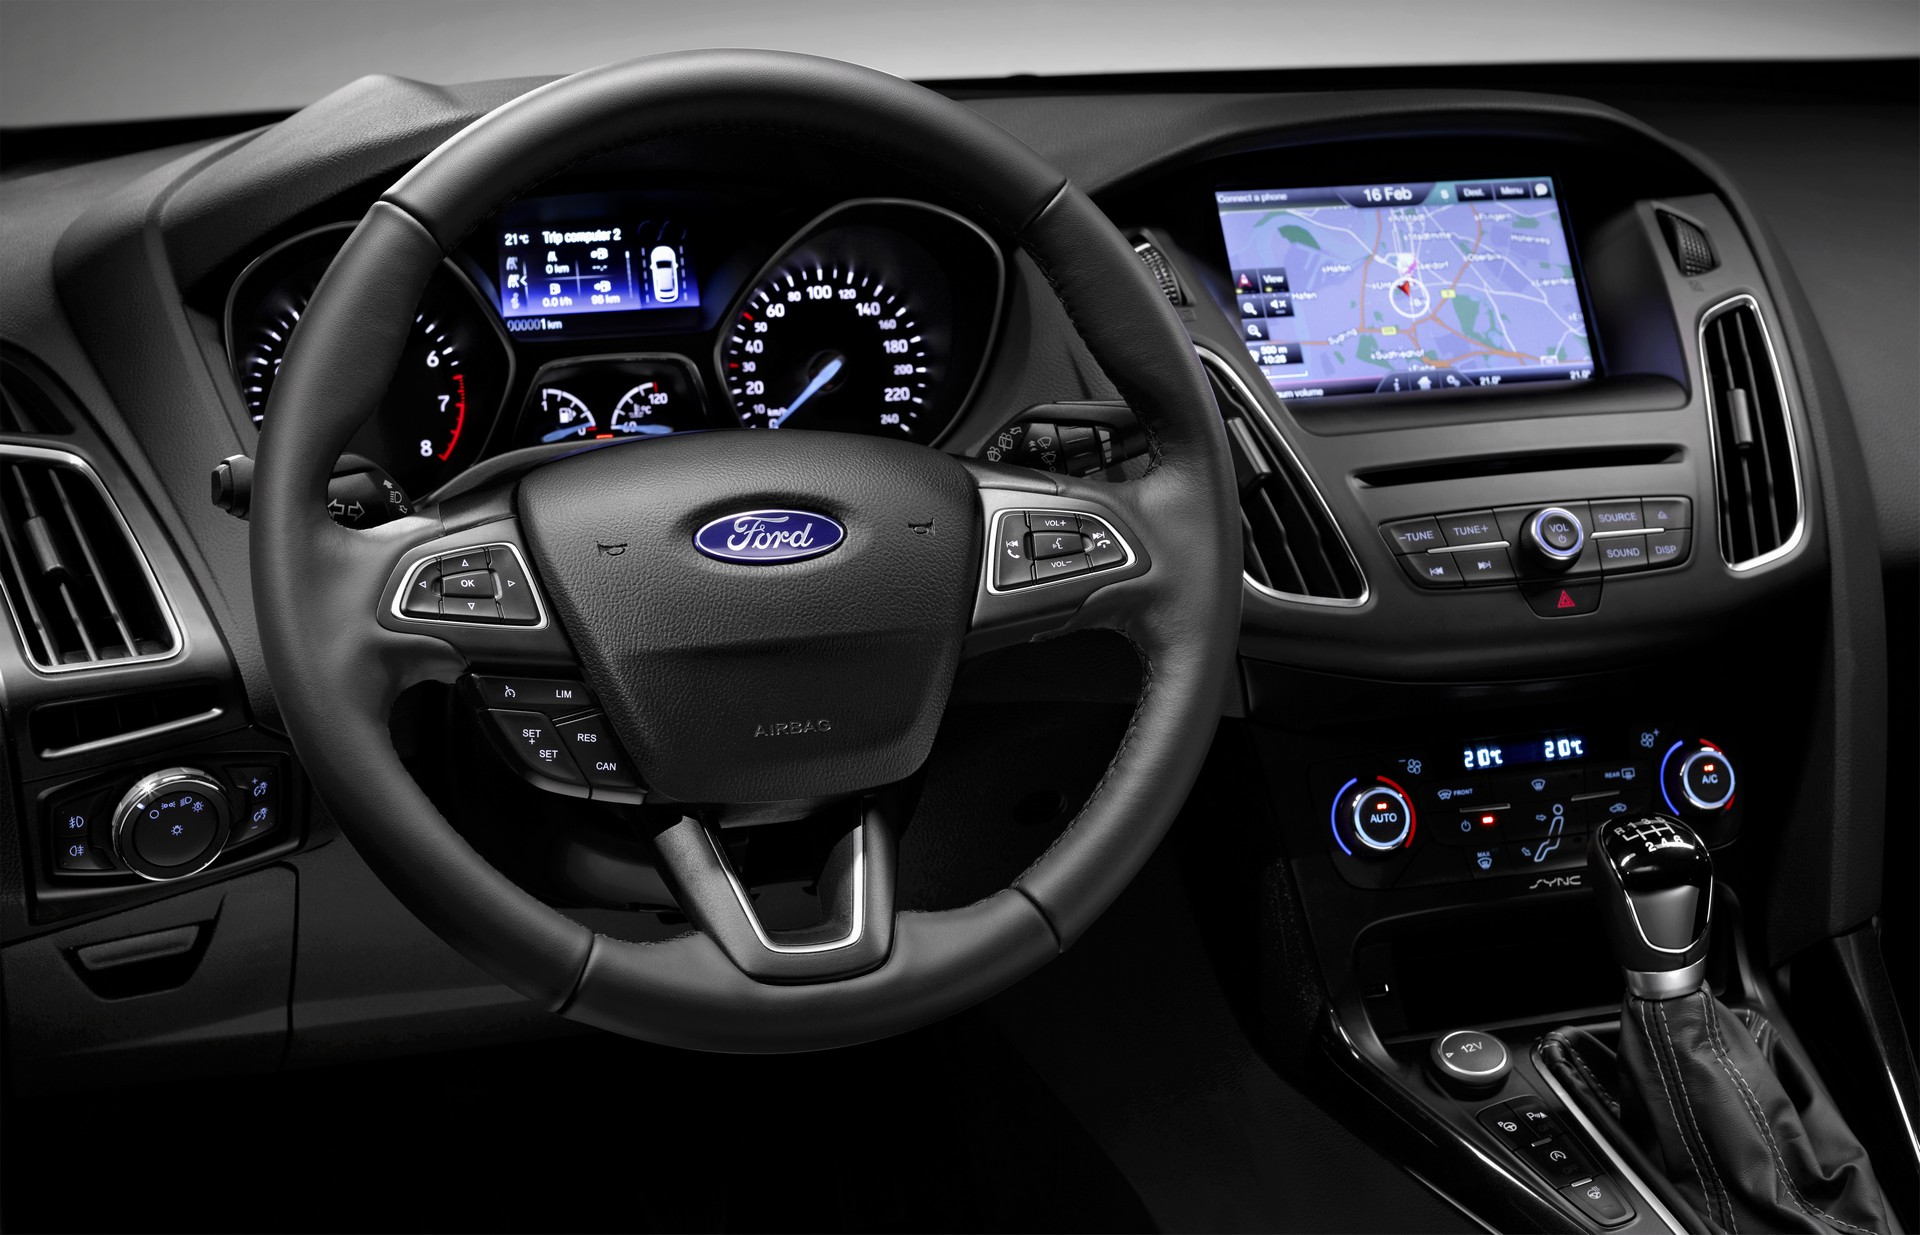 fantastic-design-of-the-black-dash-ideas-with-black-steering-wheels-as-the-ford-focus-facelift-2015-interior-ideas